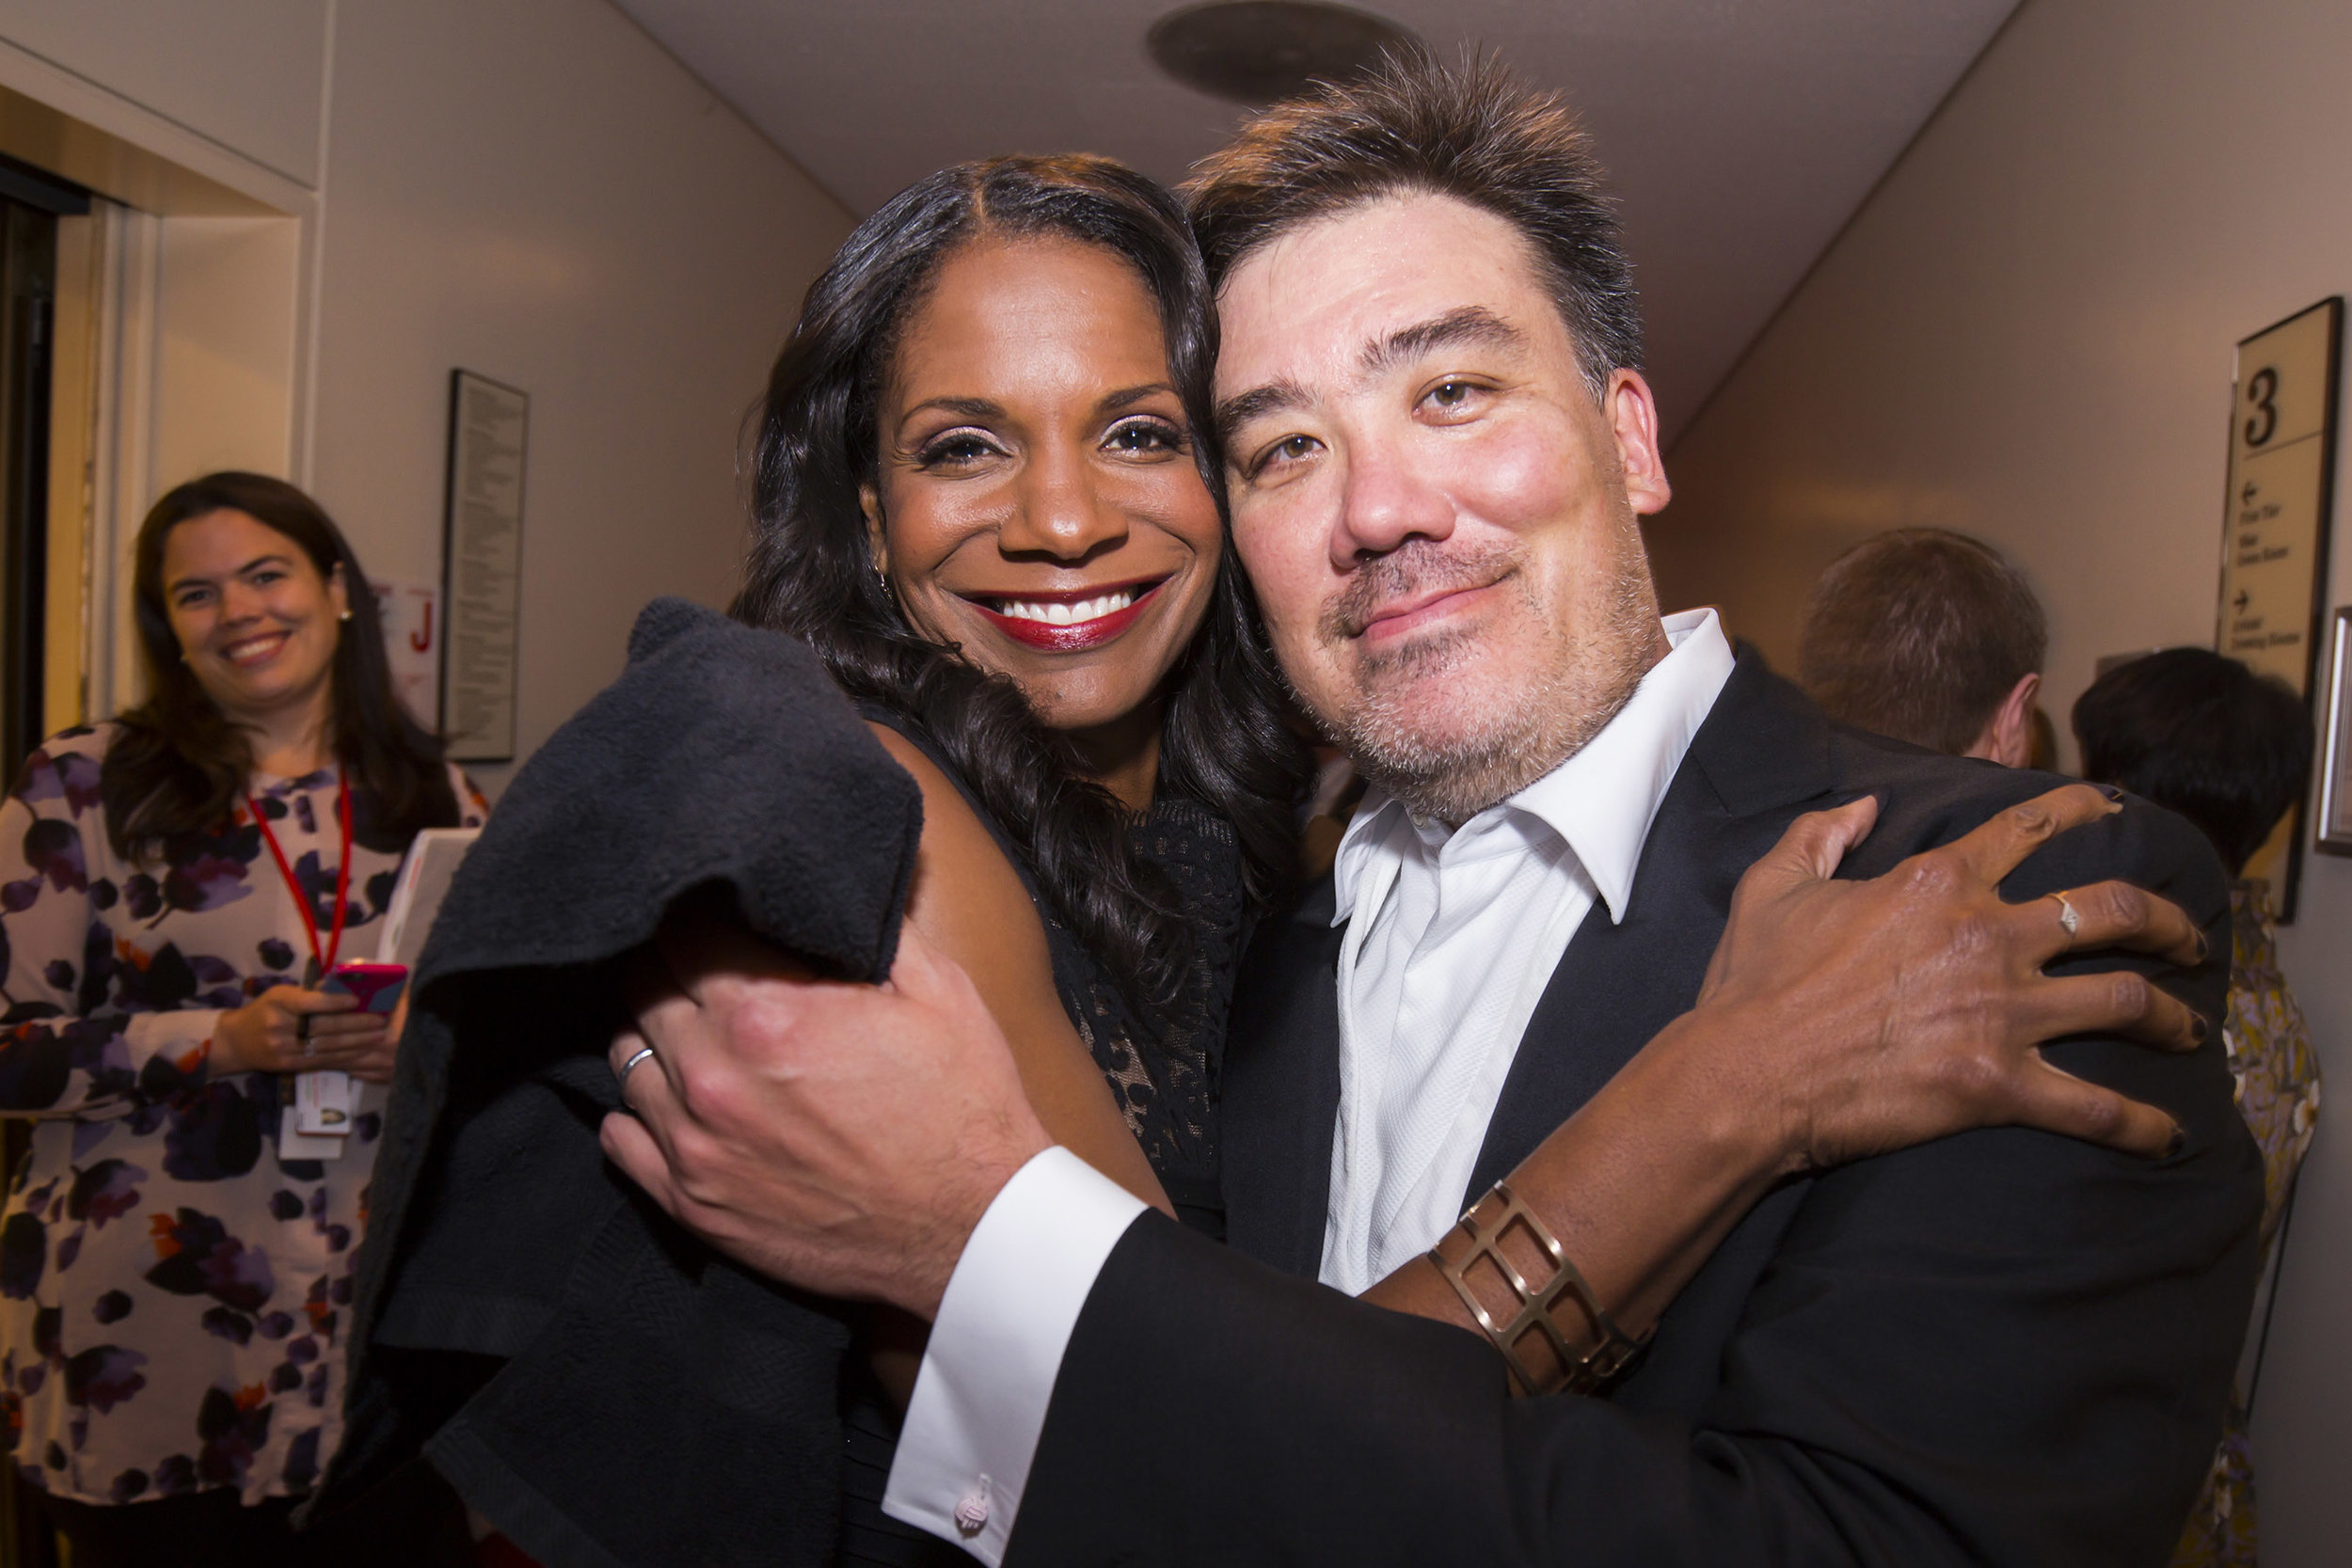 Audra McDonald sang Duke Ellington with Alan Gilbert and the Philharmonic at Carnegie Hall's 120th Anniversary Gala in 2011. In 2014 she appeared as the Beggar Woman in Stephen Sondheim and Hugh Wheeler's  Sweeney Todd: The Demon Barber of Fleet Street,  with Gilbert on the podium. She also has frequently been an off-stage partner as host of the Orchestra's appearances on  Live From Lincoln Center  national telecasts.